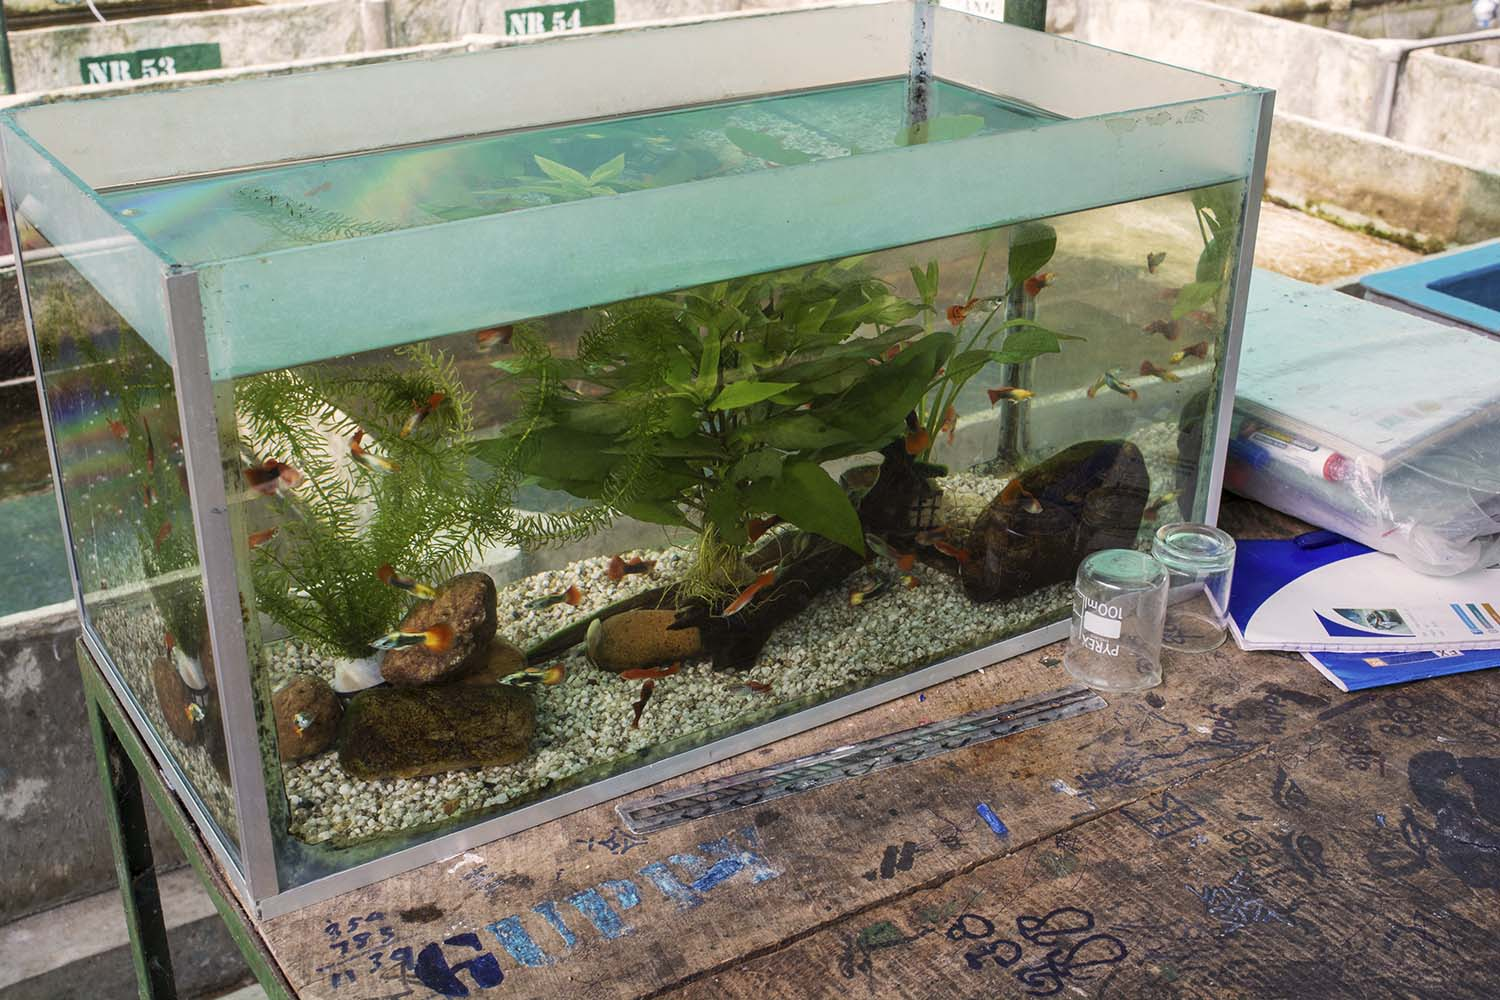 Developing quality broodstock fish with desirable traits is one of the primary functions of the center. Aquariums like this one allow staff to sort and grade adult fish for traits like color, finnage, and body shape